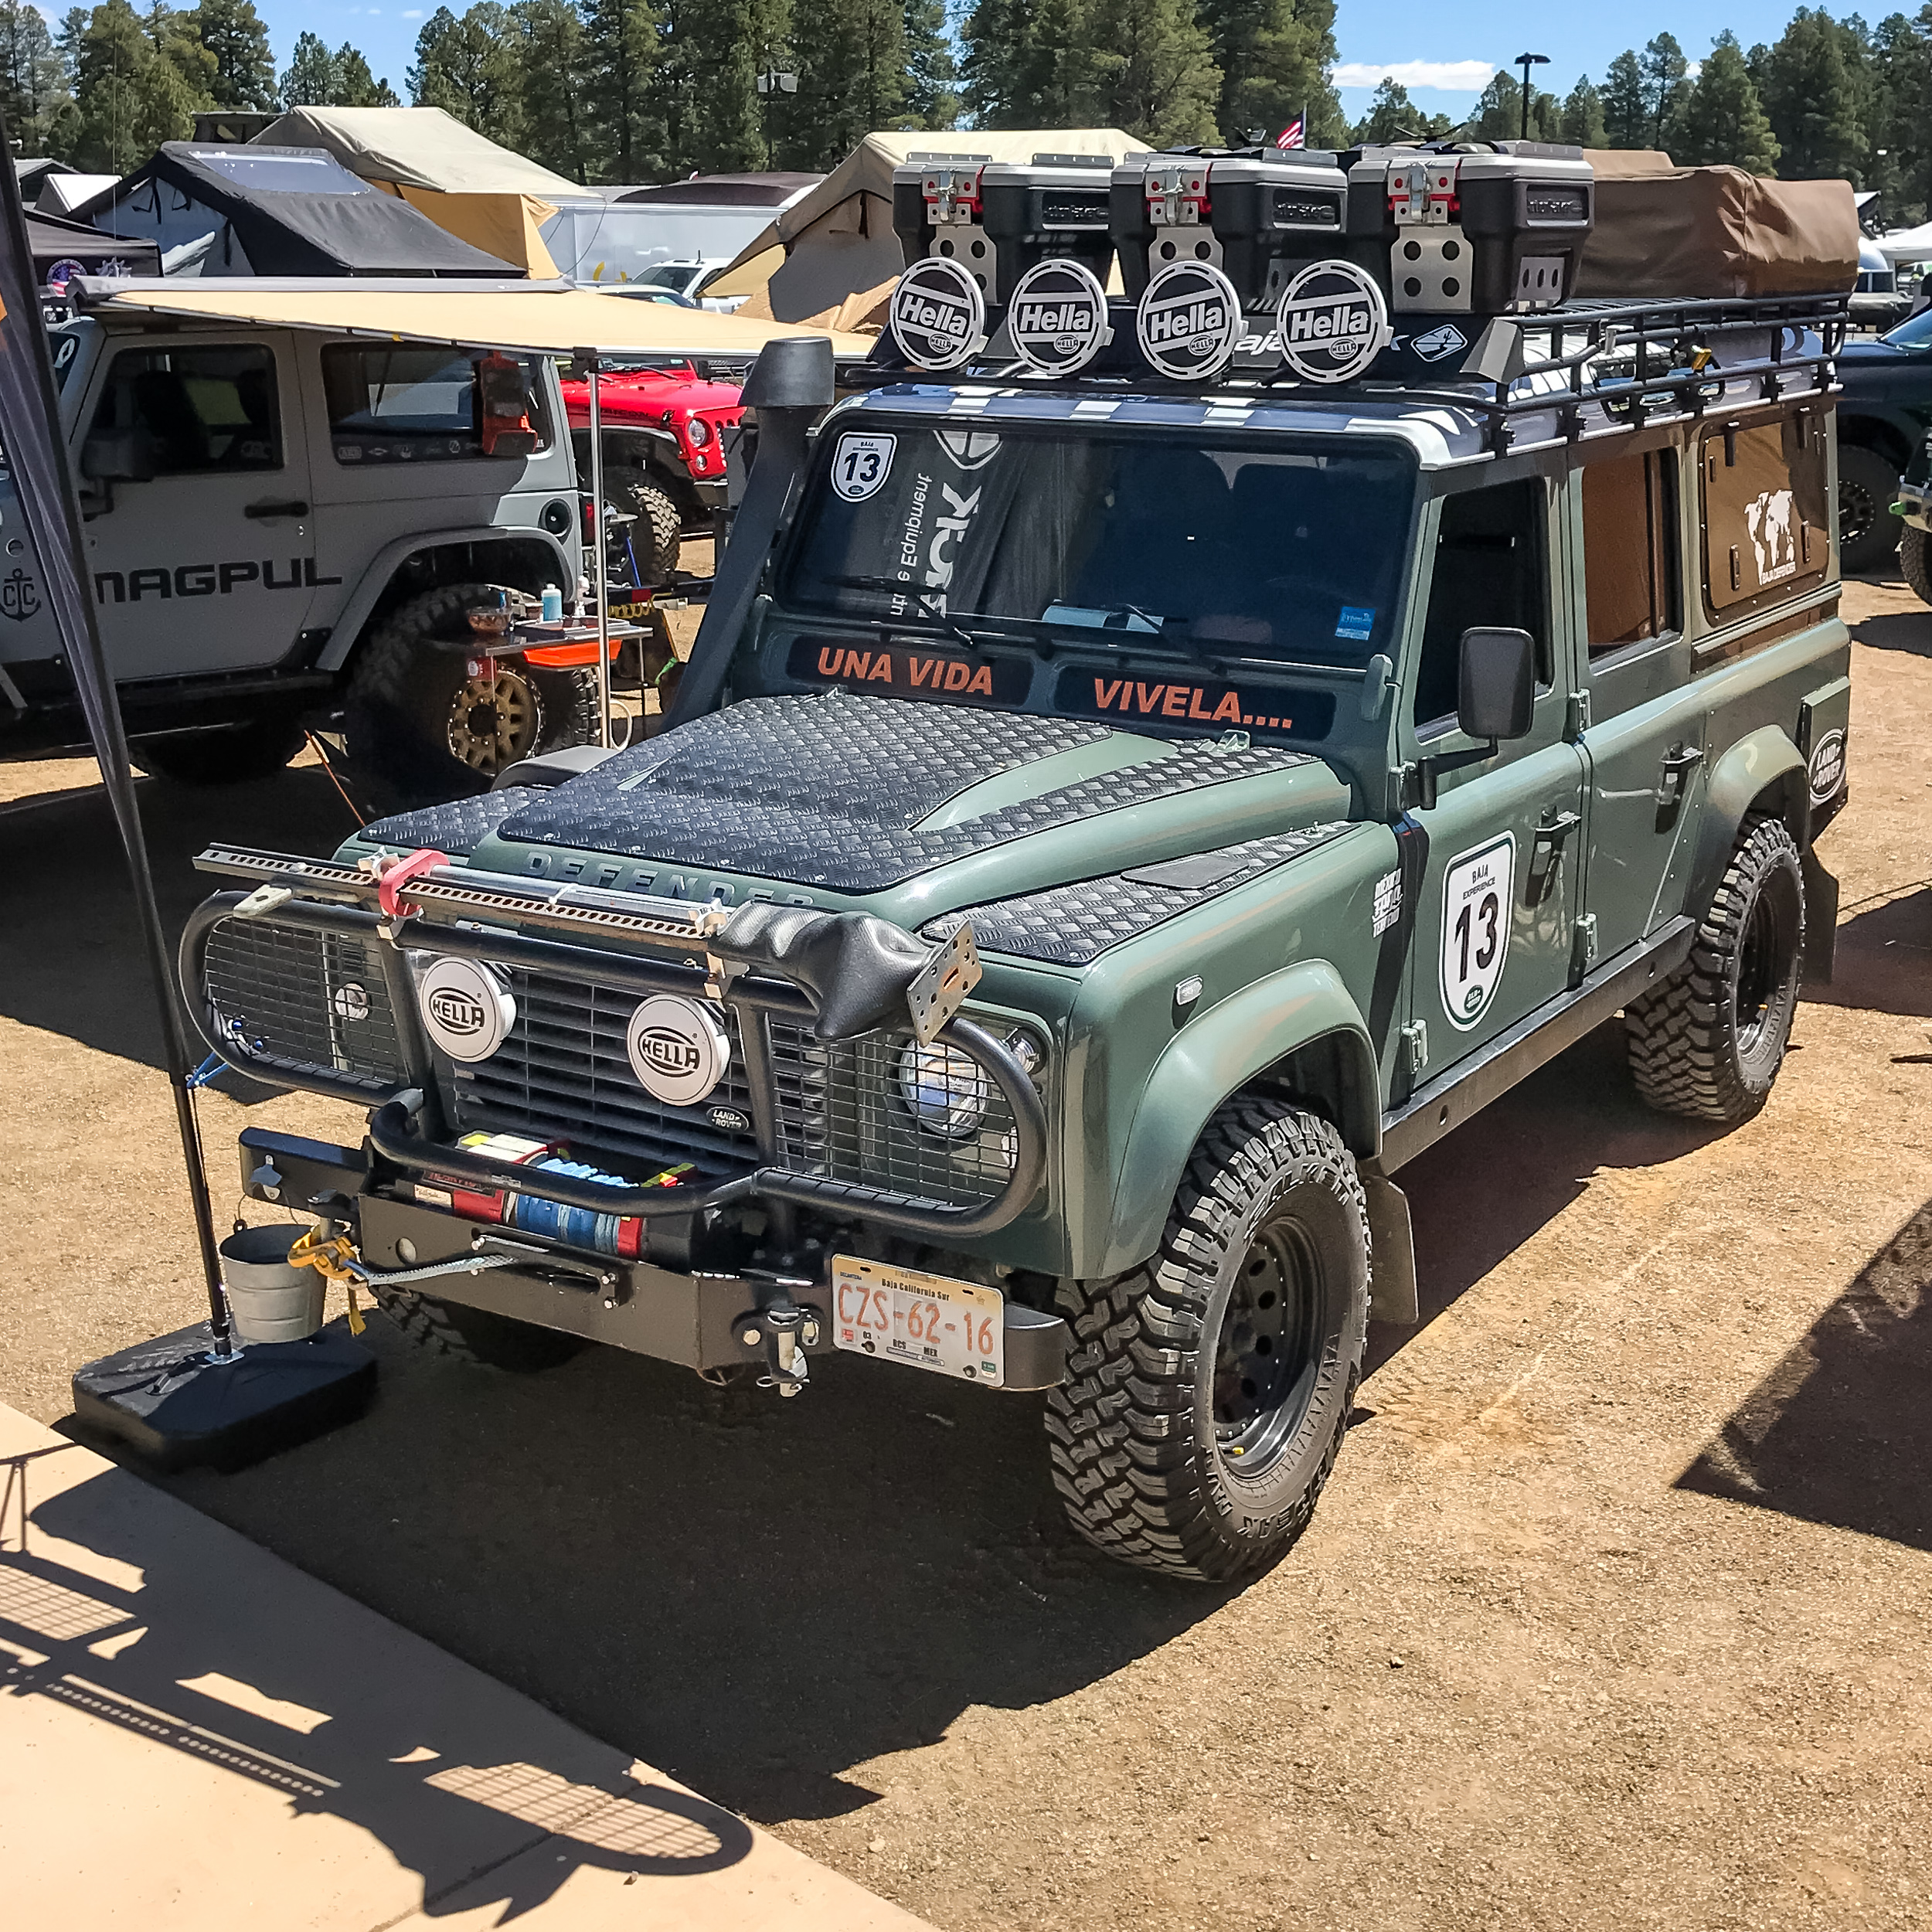 25 Drool Worthy Off Road Vehicles From Overland Expo 2019 Gearjunkie